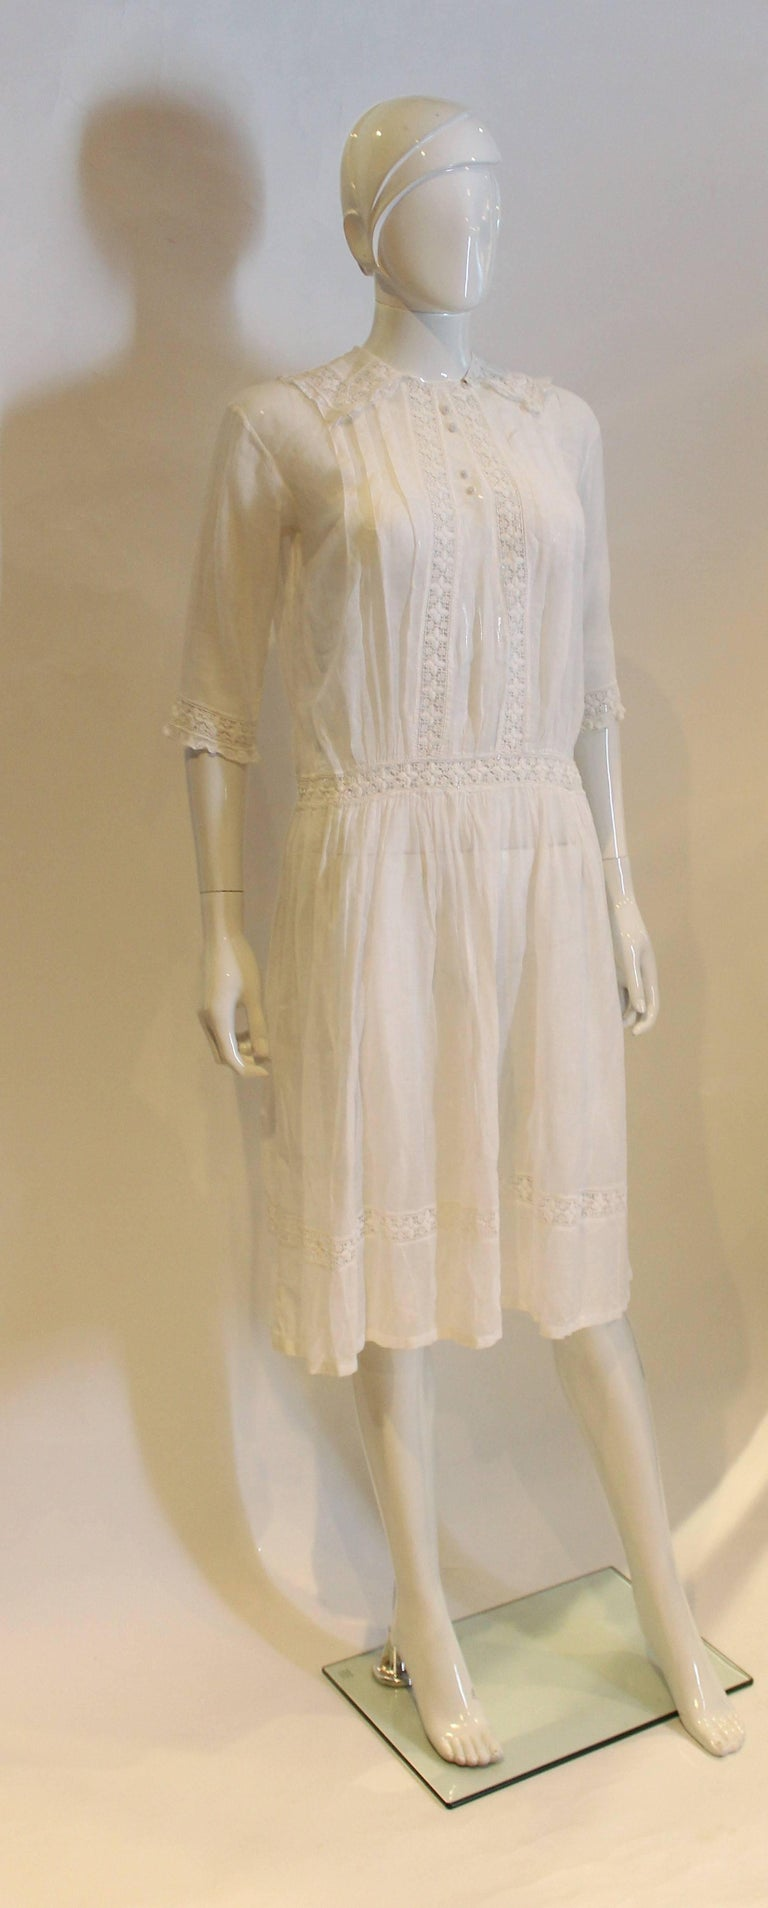 White Cotton Dress With Lace Trim For Sale At 1stdibs